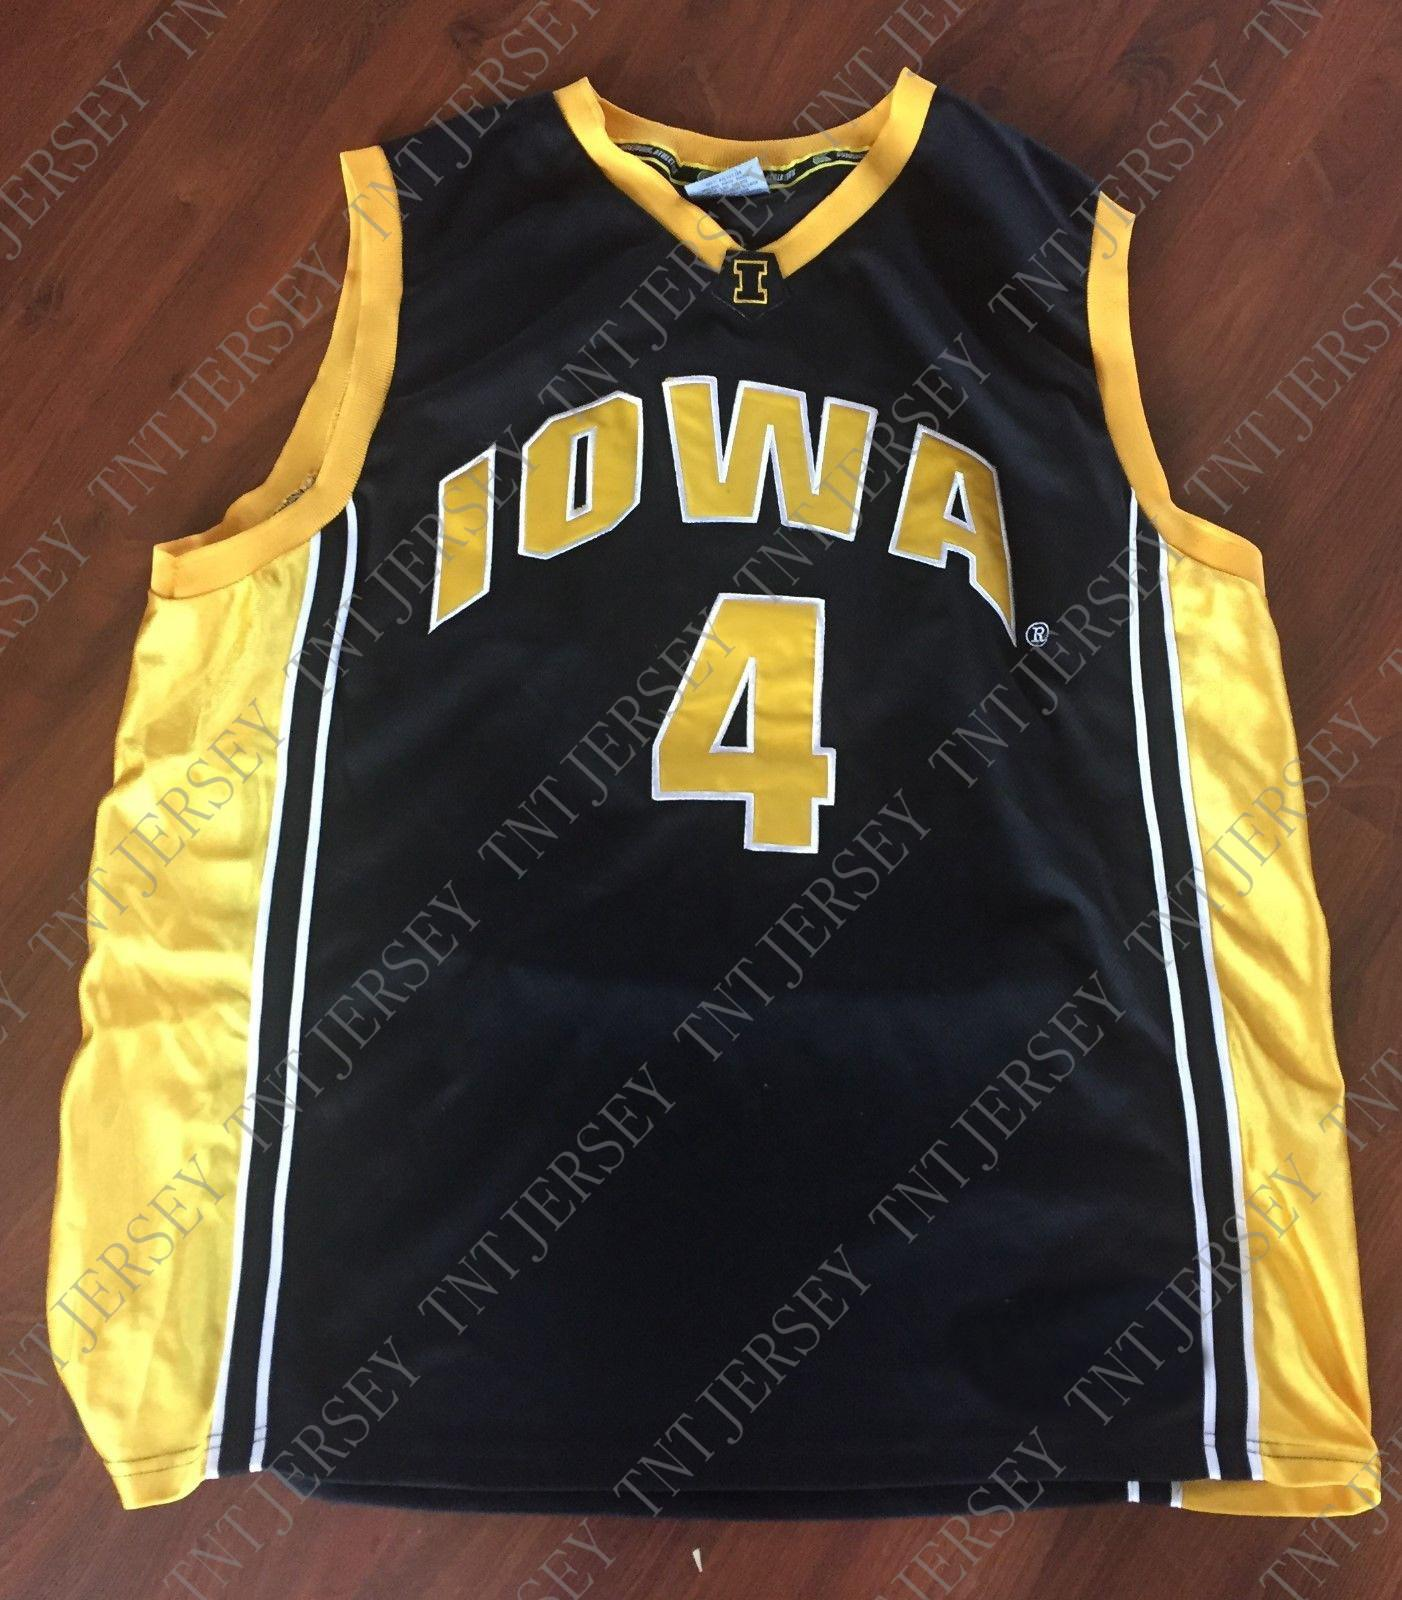 08ca4e702bb 2019 Cheap Custom #4 Iowa Hawkeyes Colosseum Basketball Jersey Black  Stitched Customize Any Number Name MEN WOMEN YOUTH XS 5XL From Tntjersey,  ...